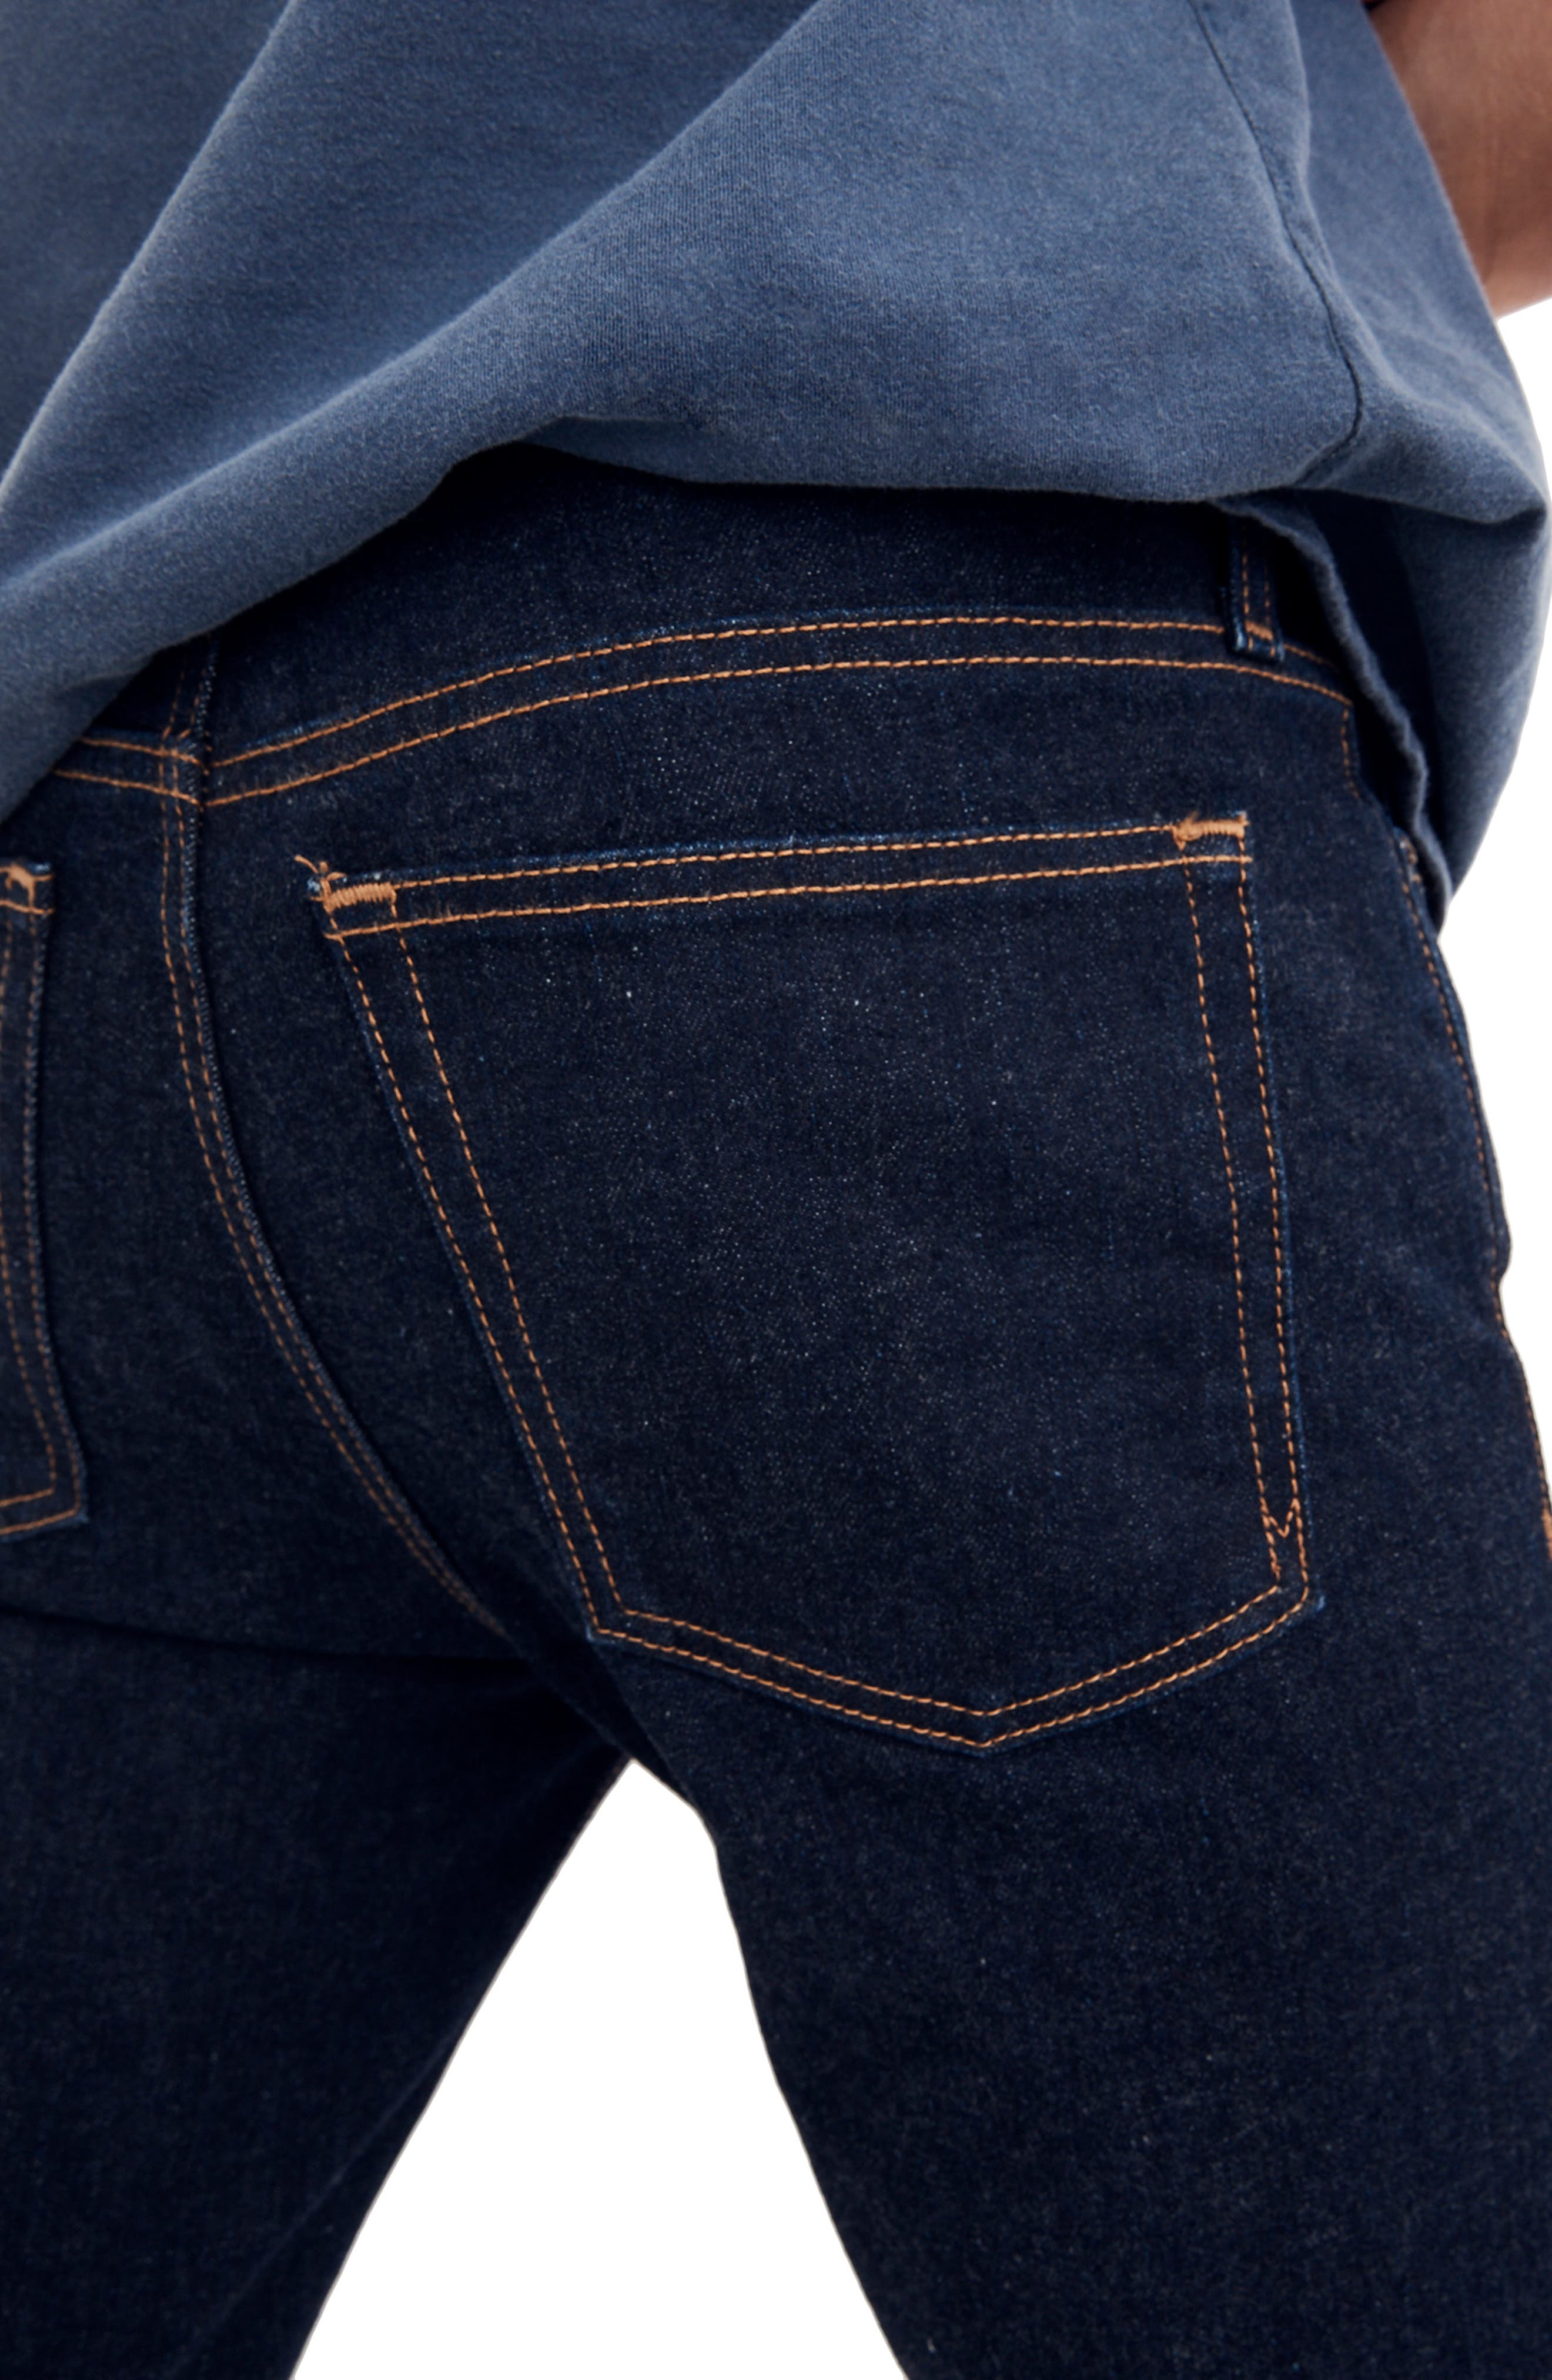 Skinny Fit Jeans,                             Alternate thumbnail 4, color,                             RINSE